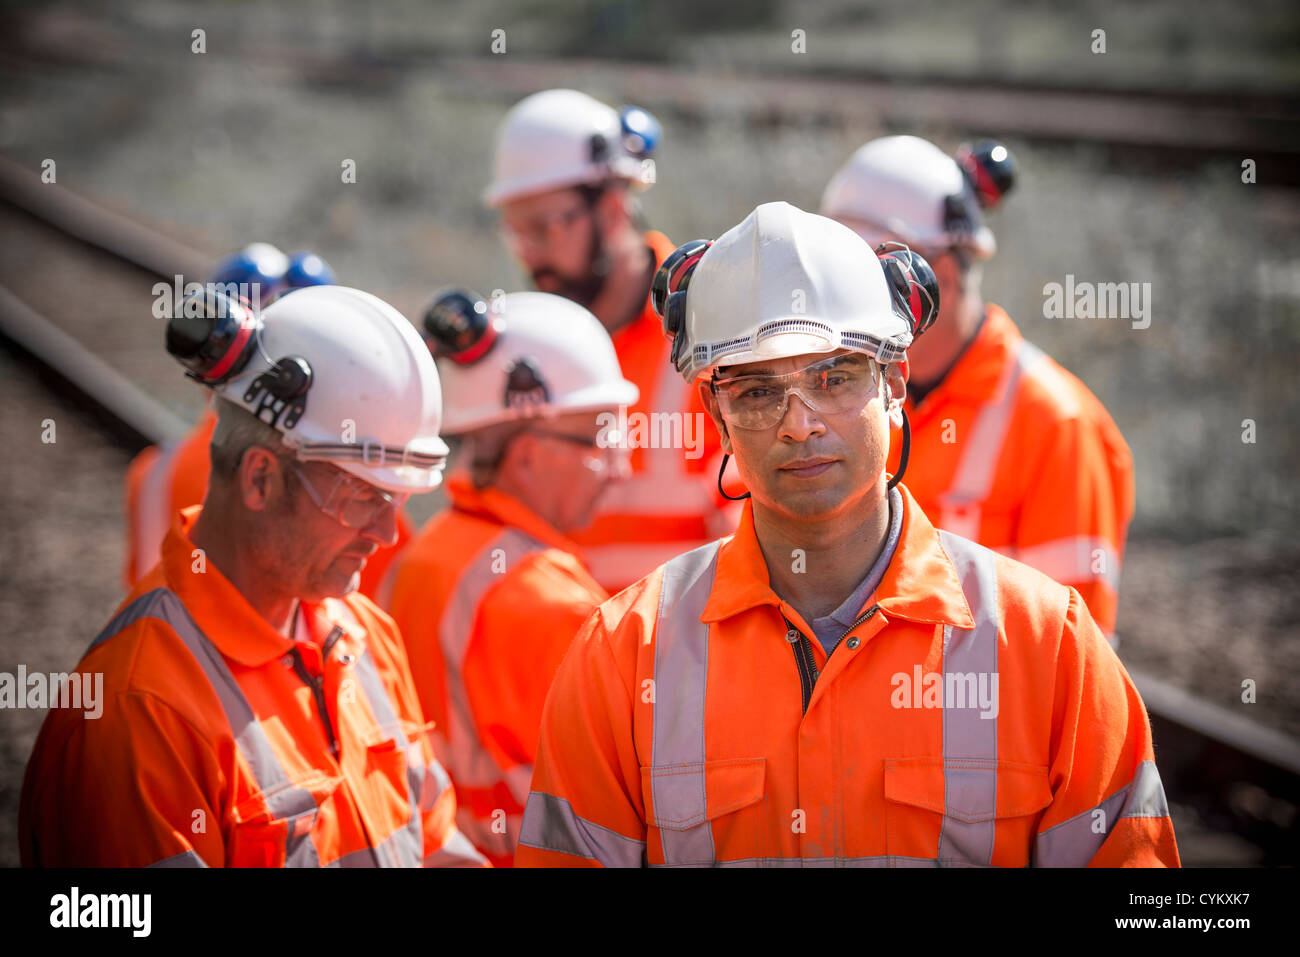 Railway workers standing on train tracks - Stock Image